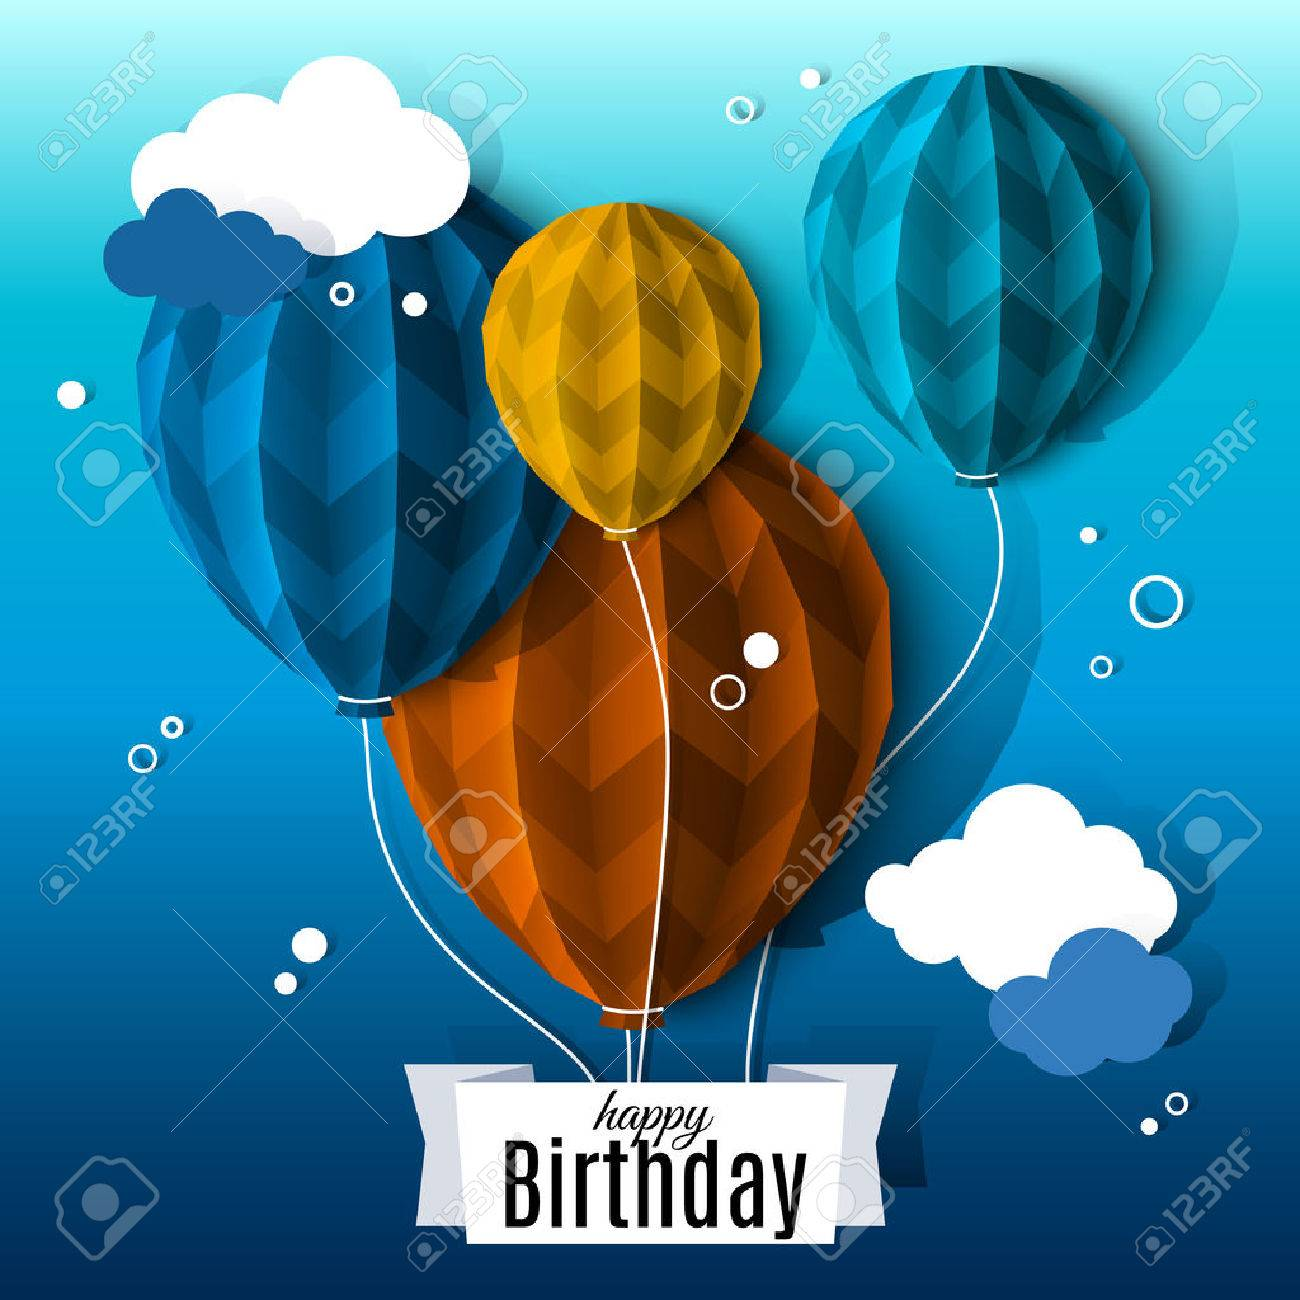 Birthday card with balloons in the style of flat folded paper. - 45765771